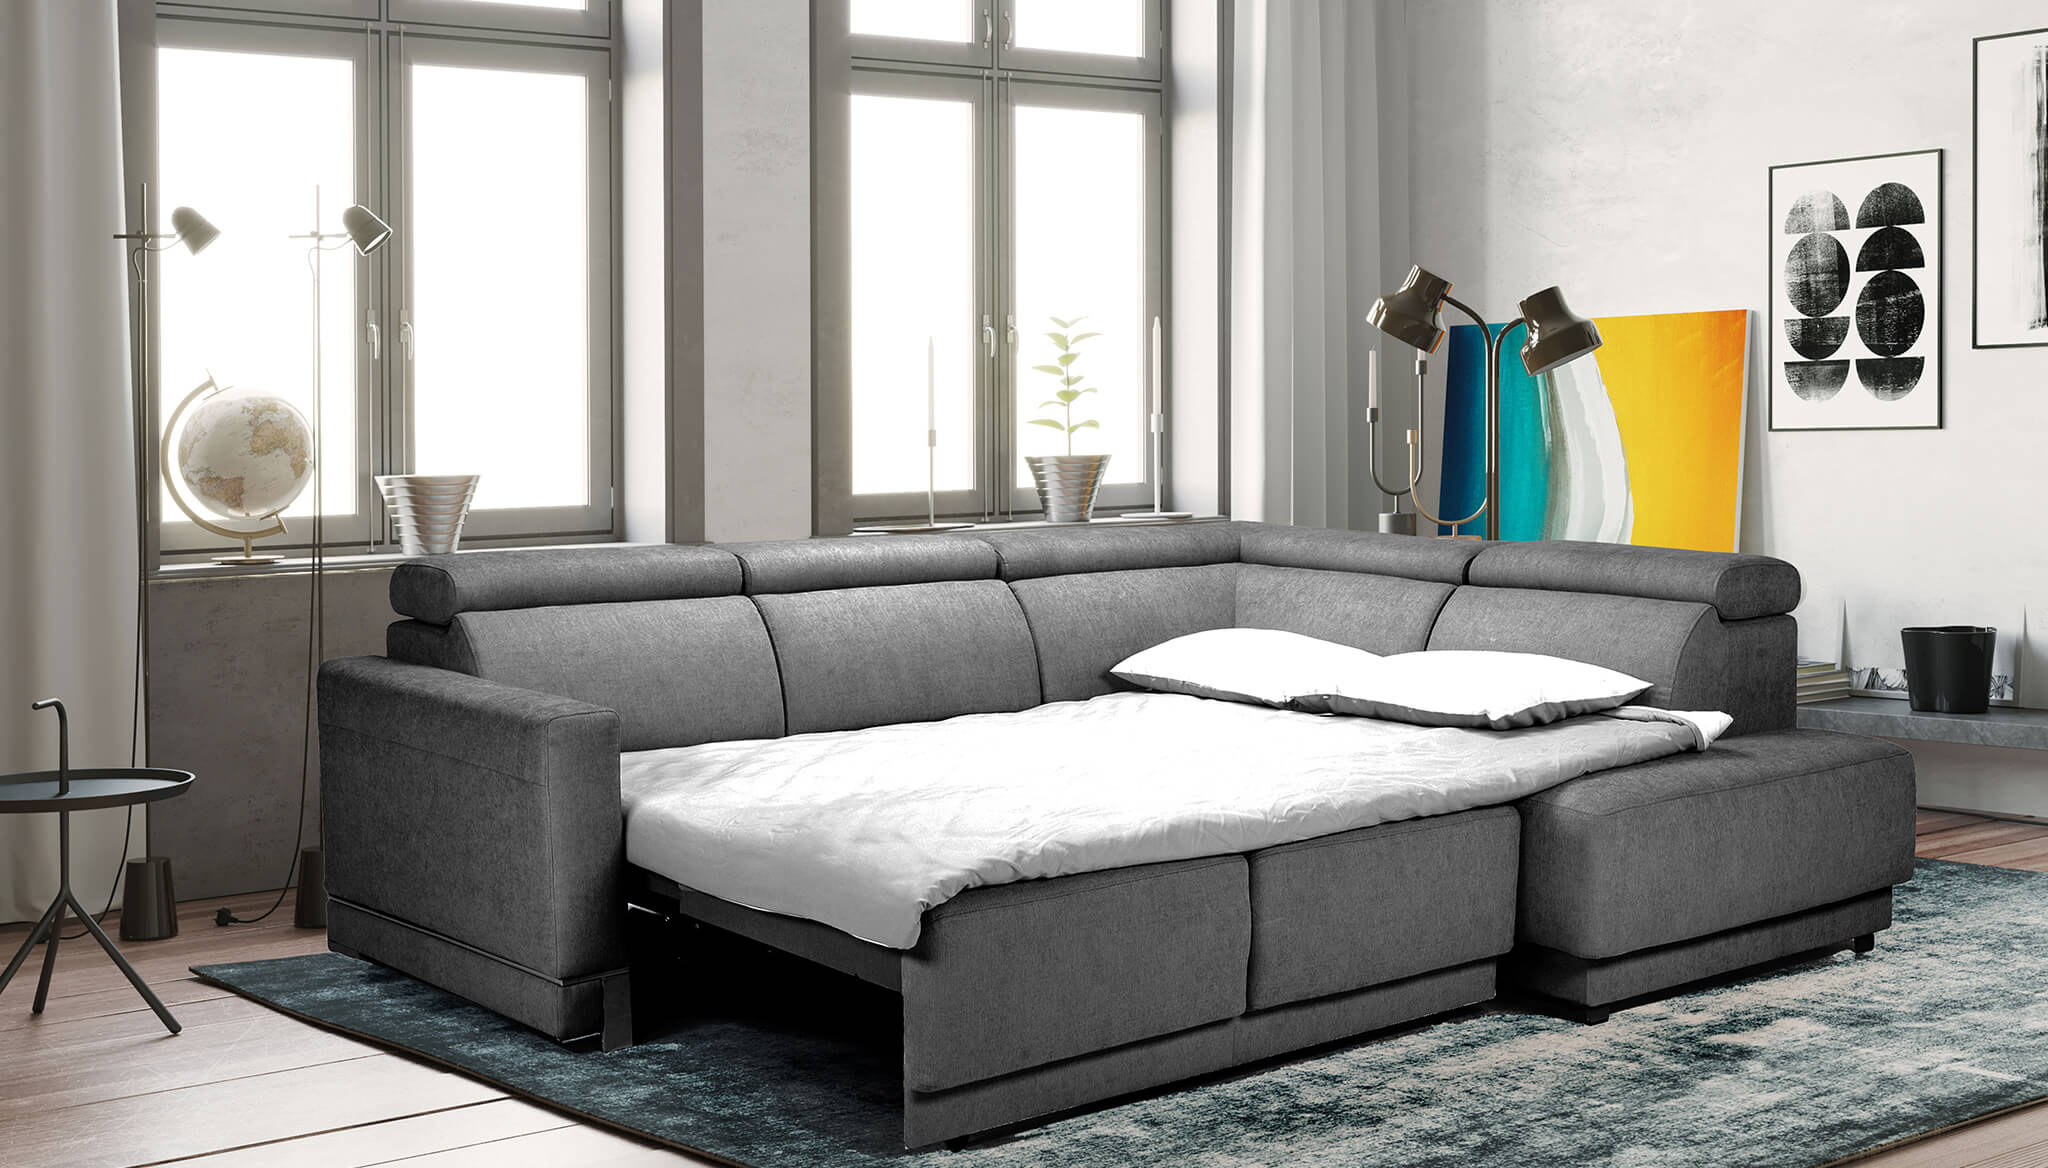 Marburg Sectional Sofa Bed with Storage | Nordholtz Furniture